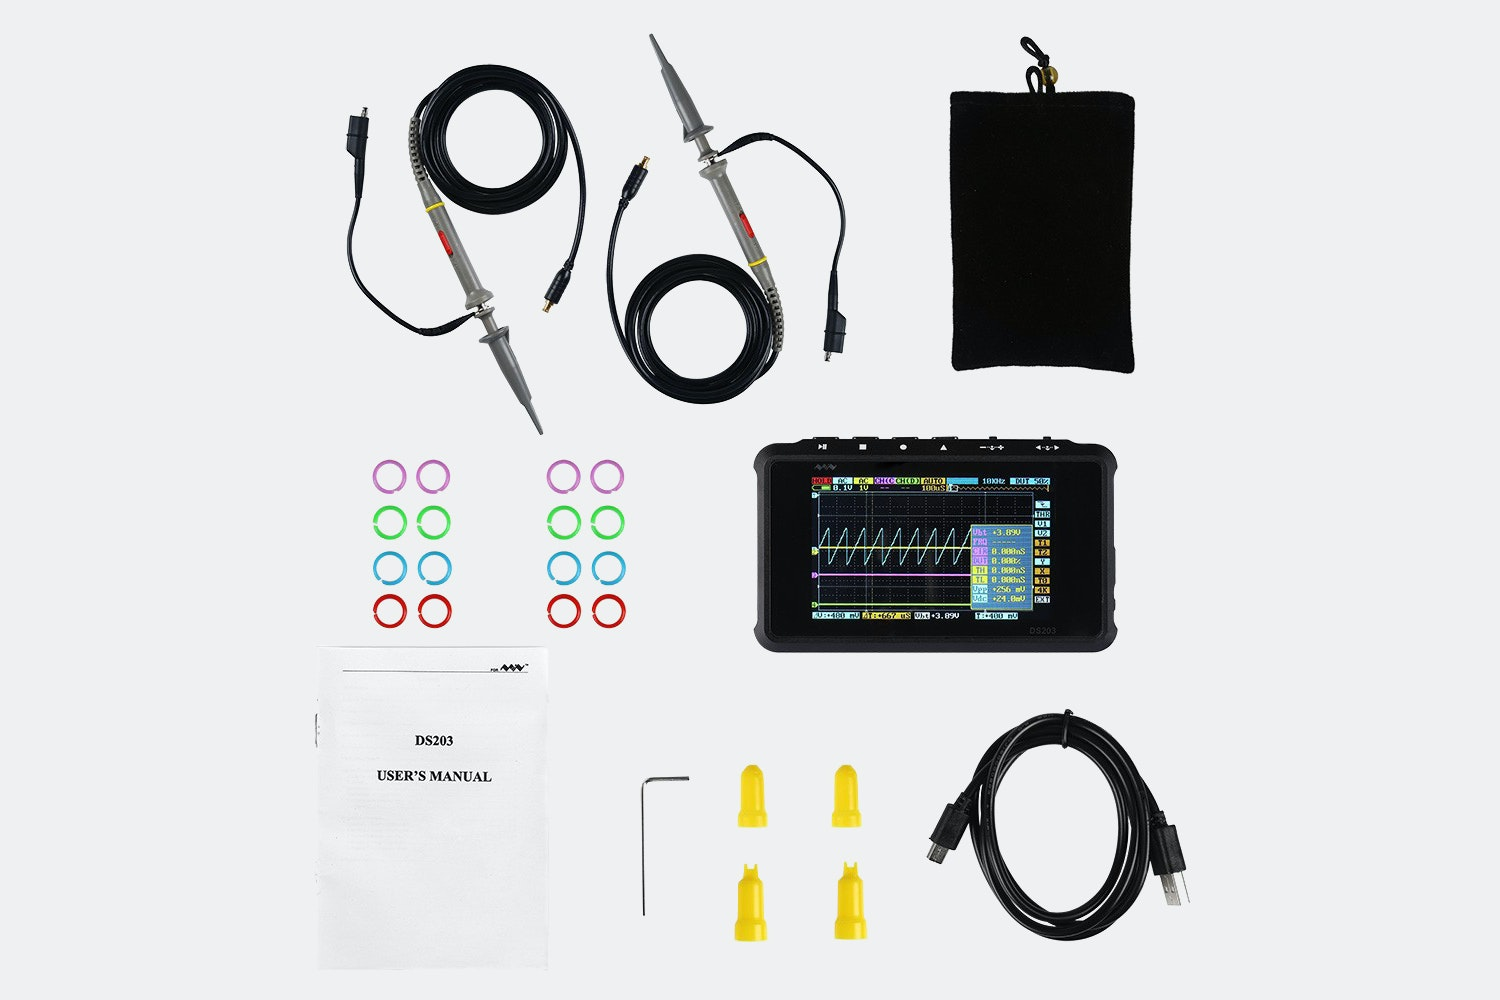 DSO203 NANO ARM DSO V2 Quad Mini Oscilloscope Kit